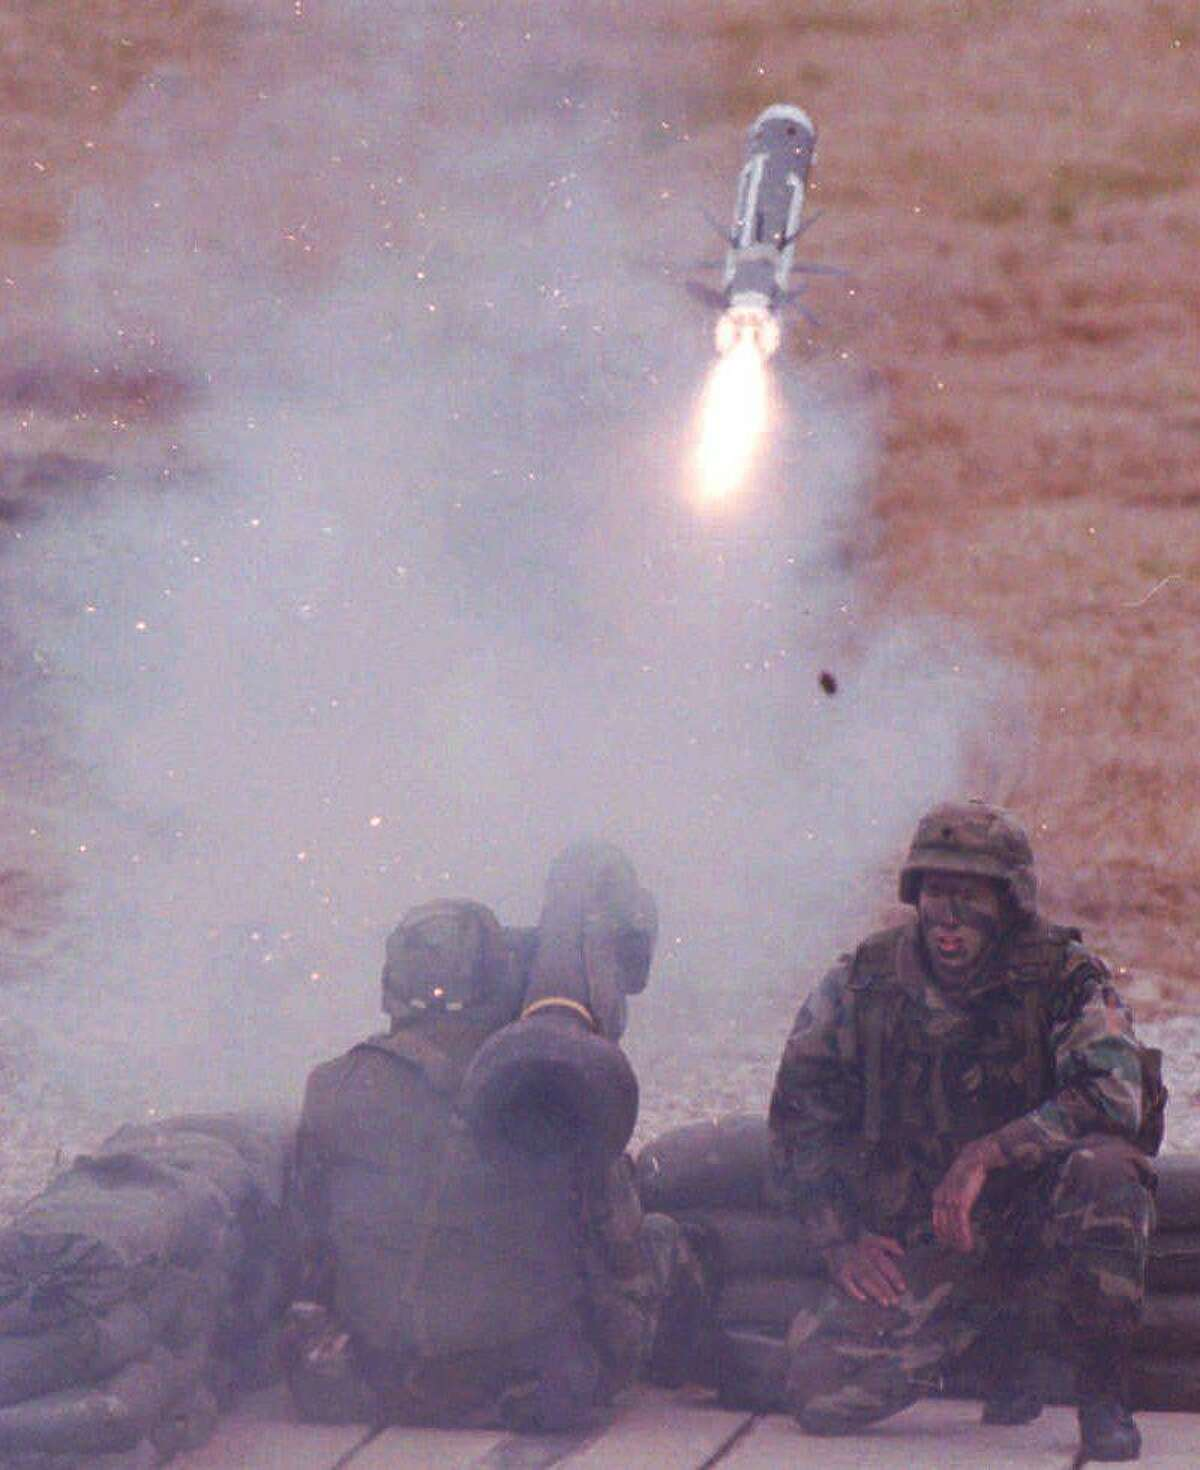 Staff Sgt. Gary Thompson at Redstone Arsenal in Huntsville, Ala., fires a Javelin missile at a Soviet T72 battle tank located 2,400 meters downrange during a training exercise in the 1990s. (AP Photo/Huntsville Times, Dave Dieter)